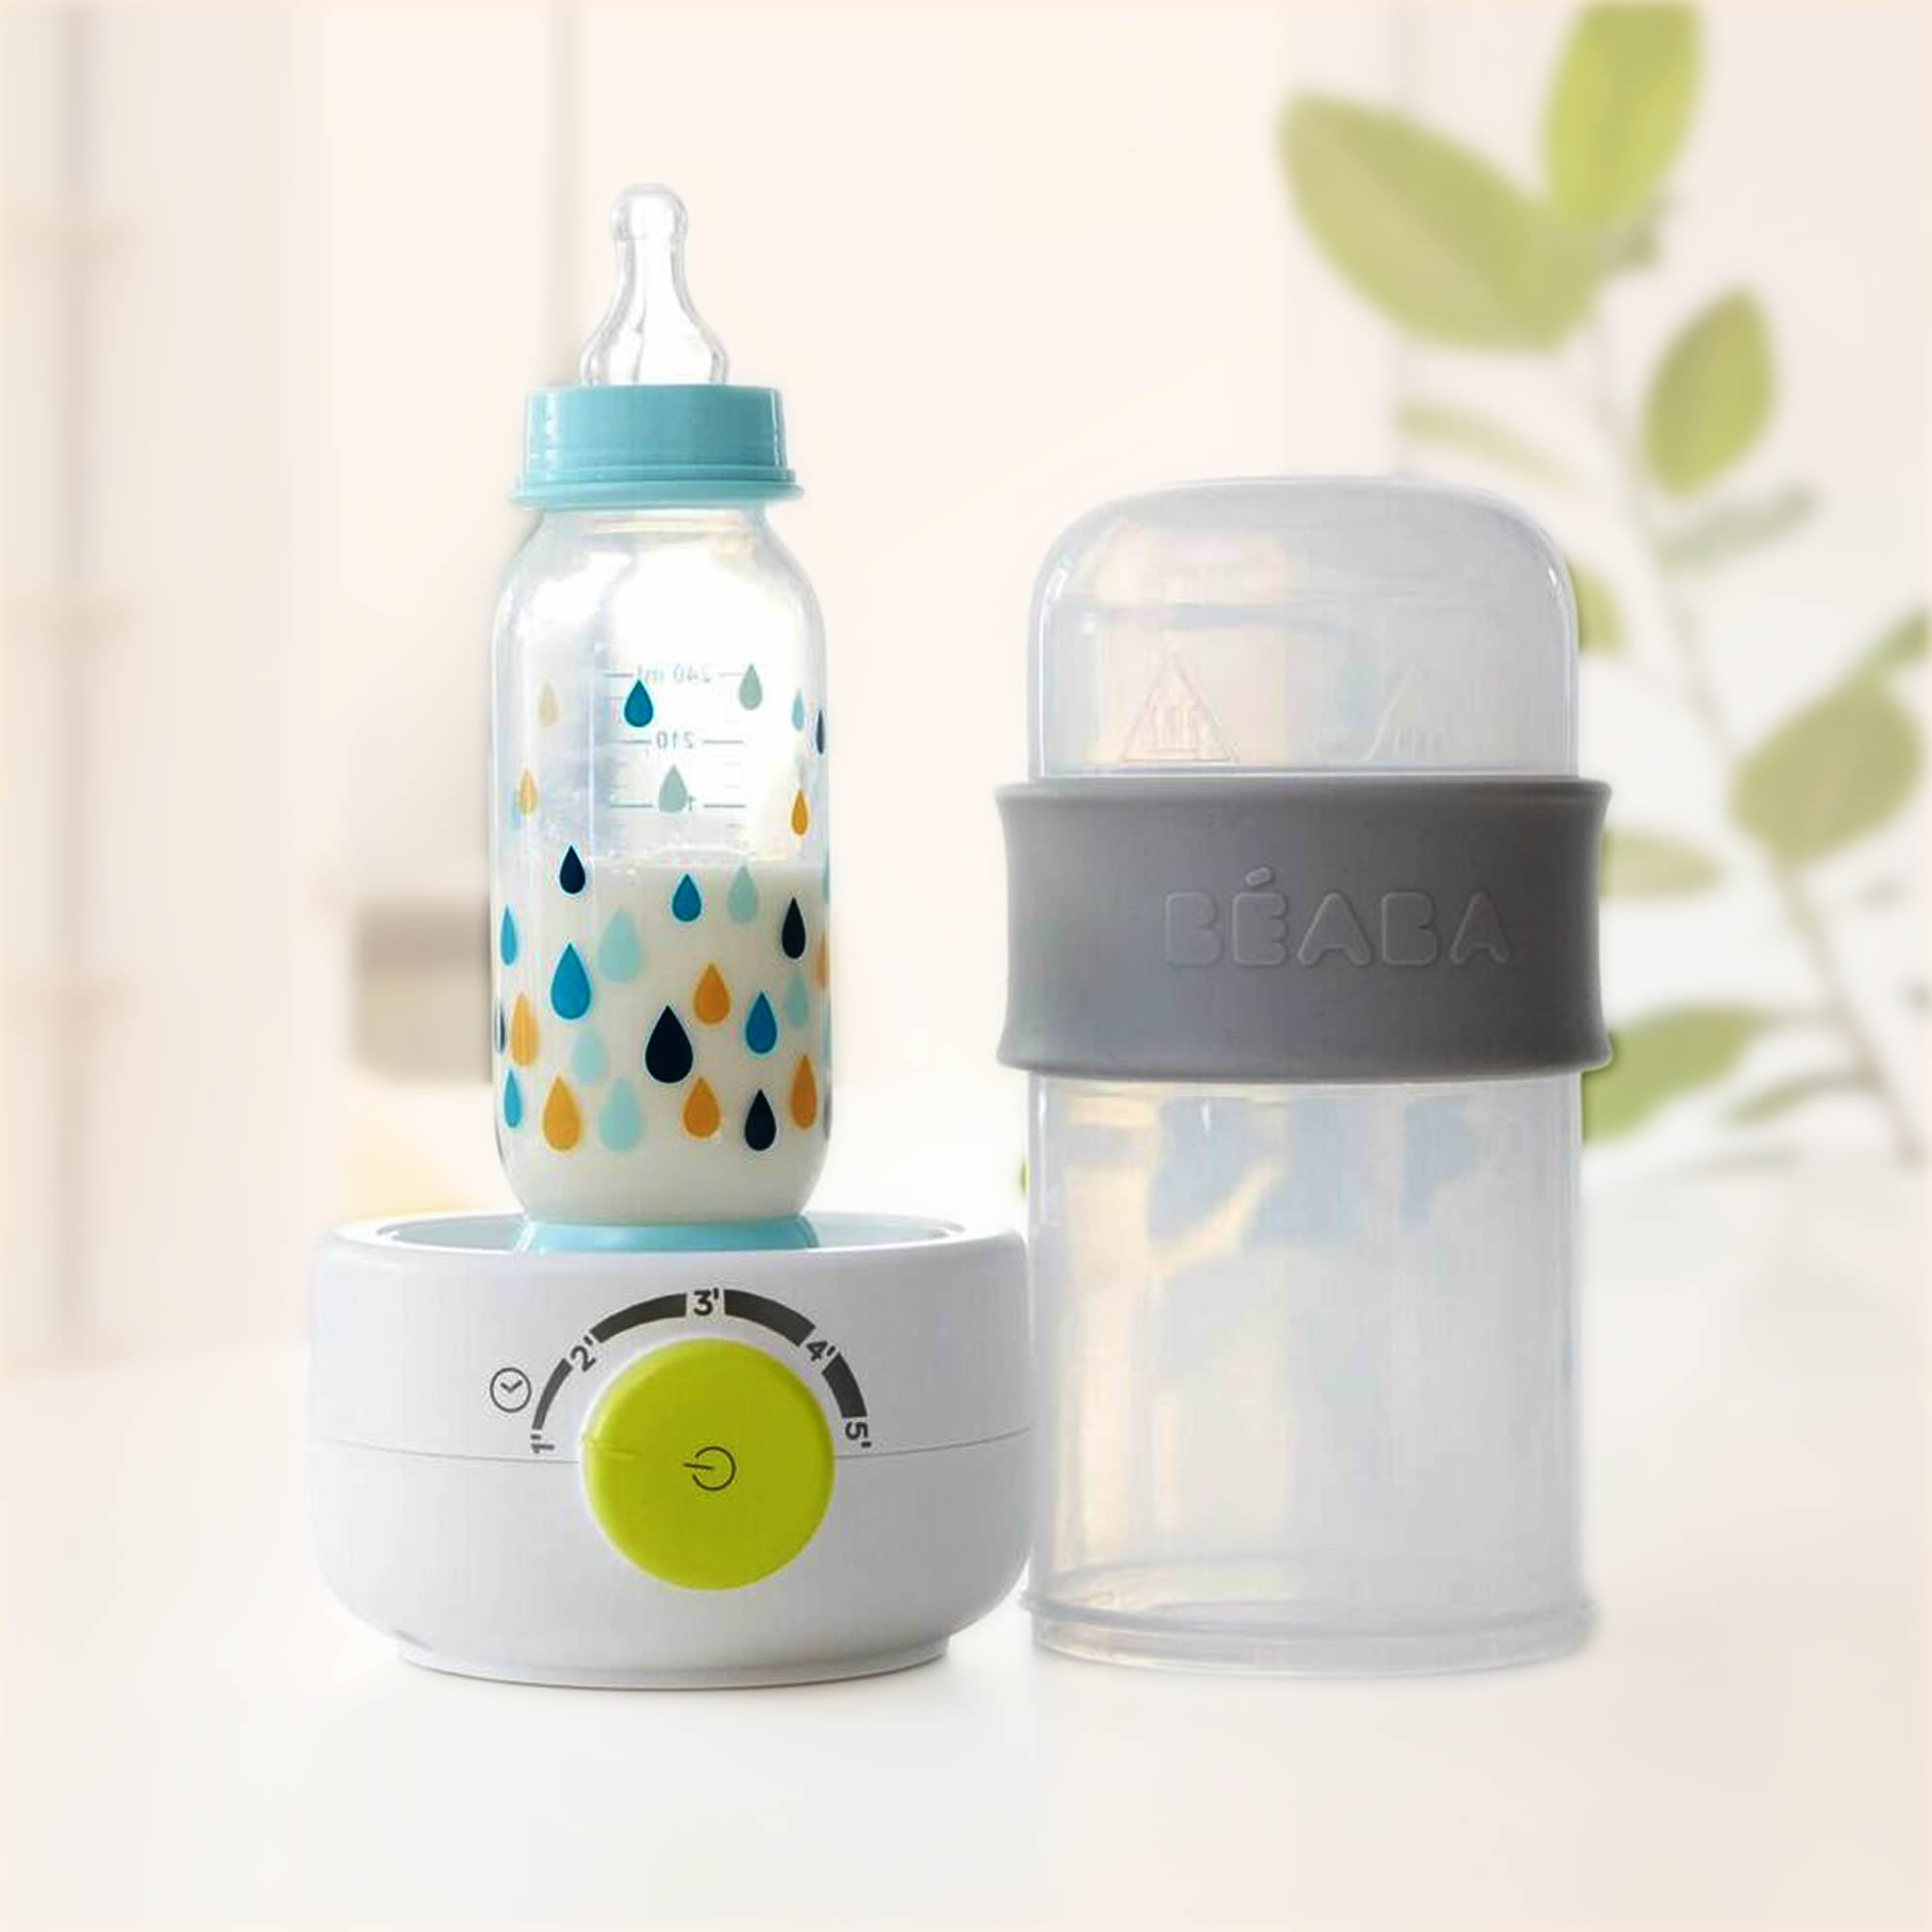 BEABA Quick Baby Bottle Warmer, Steam Sterilizer, Baby Food Heater (3-in-1) Warm Milk in Just Two Minutes, BPA and Lead Free, Simple Temperature Control, Fits All Bottle Sizes - Even Wide Neck, Clouds by BEABA (Image #5)